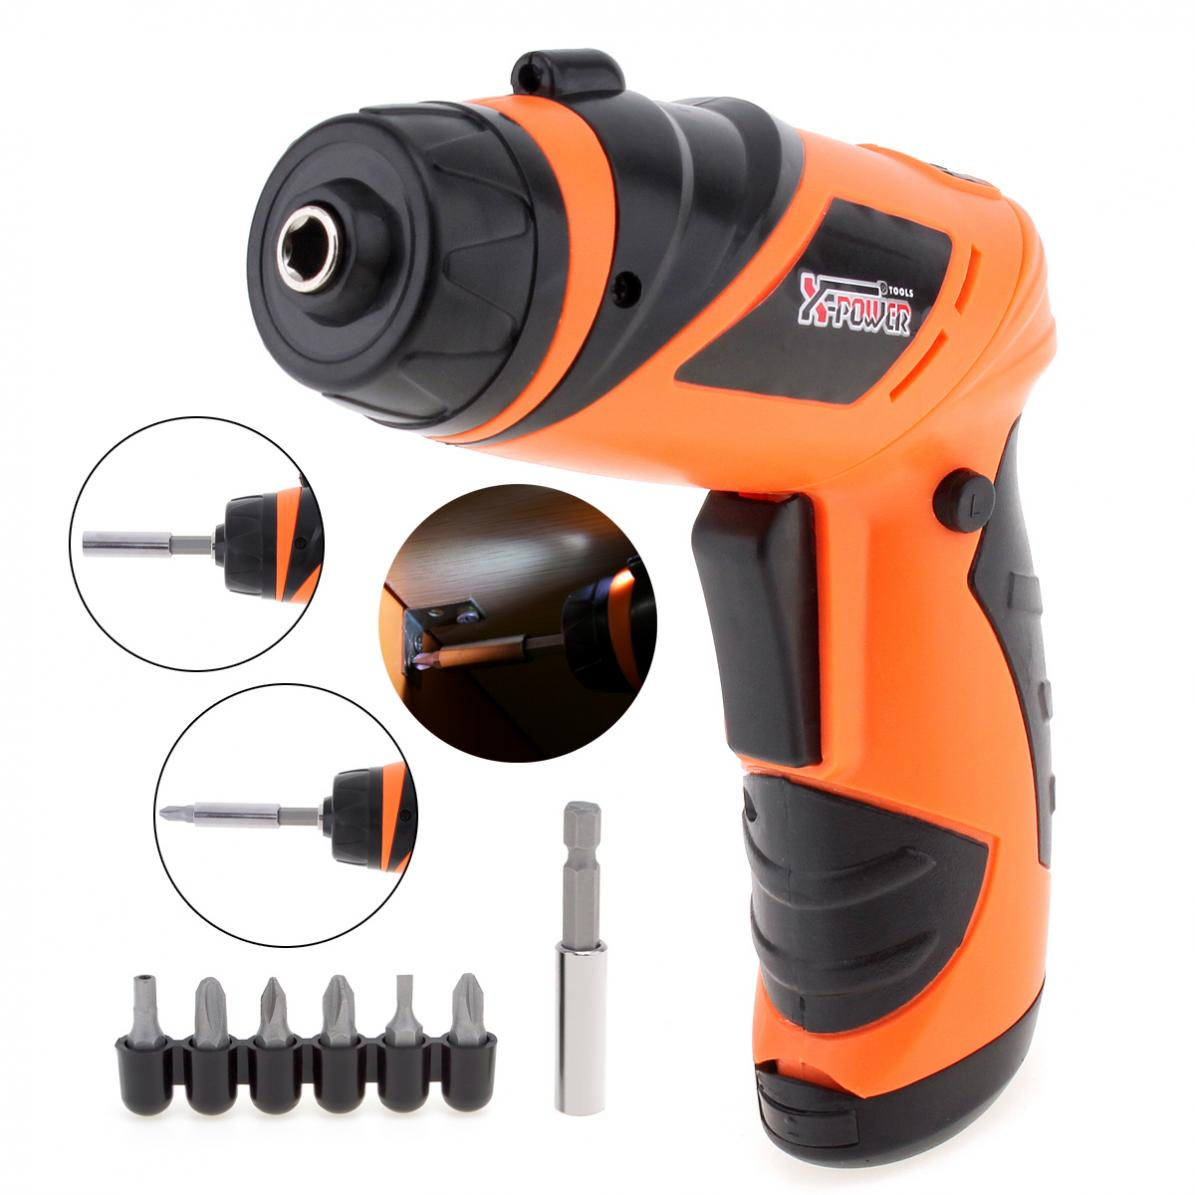 Cordless Electric Screwdriver Household Multi Function Drill/Driver Power Gun Tools LED Light By 6V Lithium-Ion